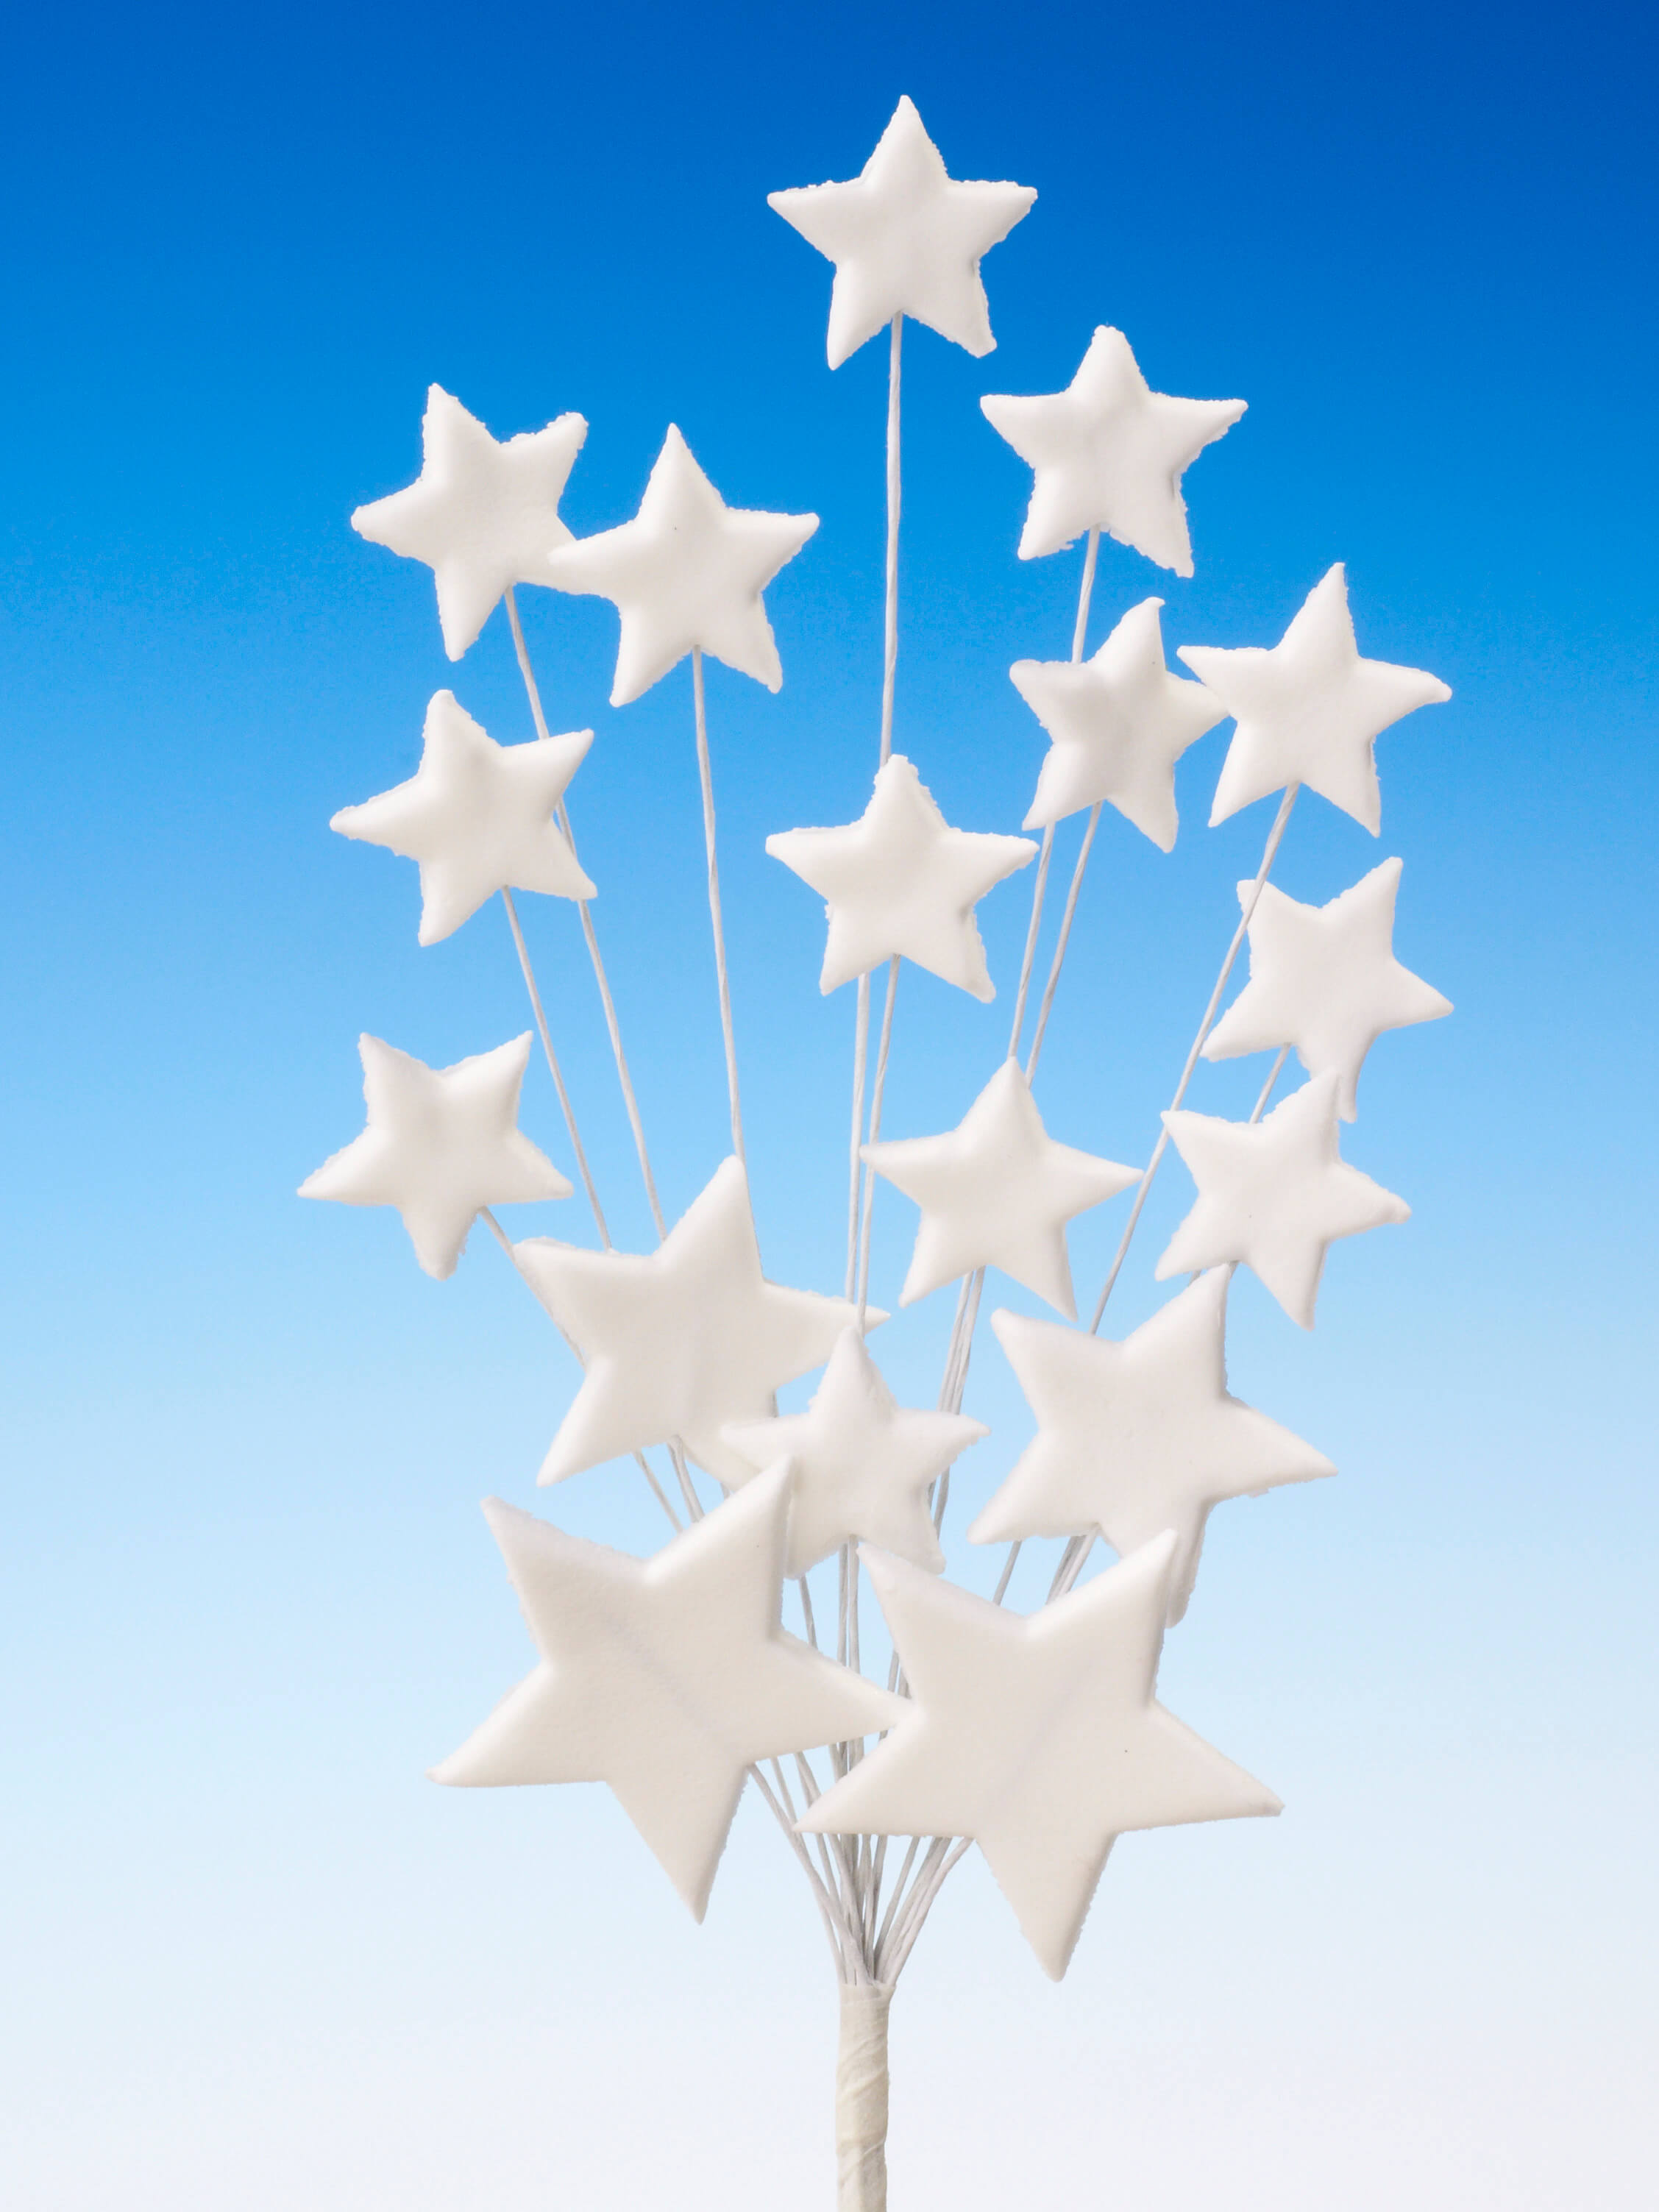 White star spray icing cake decoration - Tamworth, West Midlands